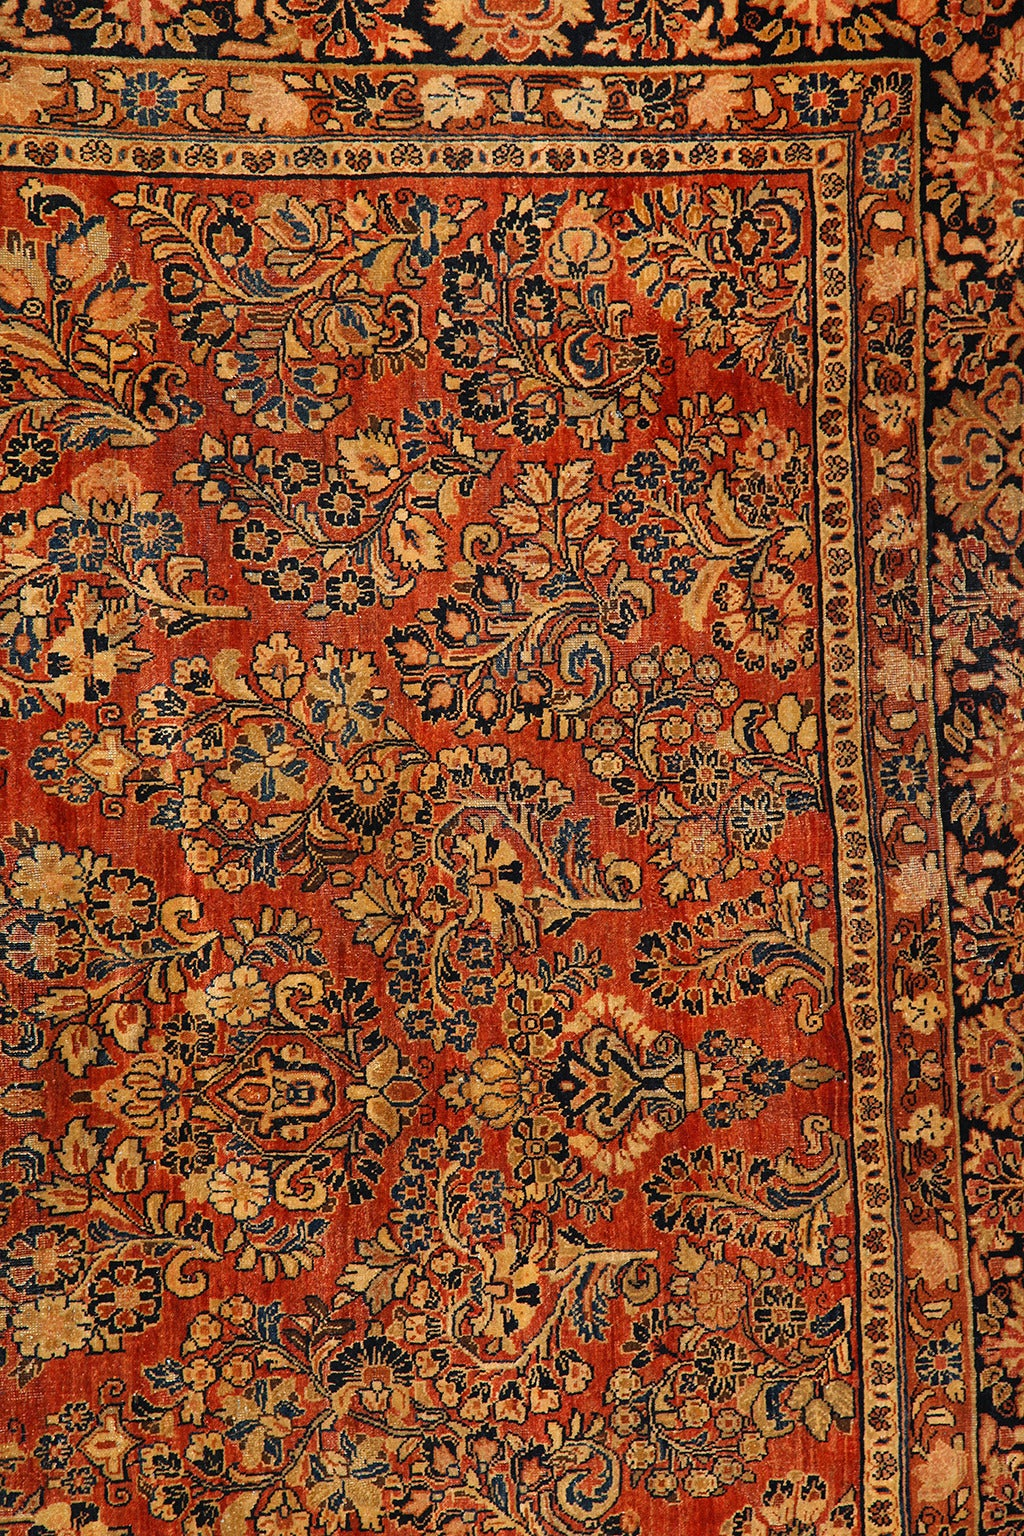 Persian Sarouk Carpet with Pure Wool Pile and Natural Vegetable Dyes, circa 1910 4